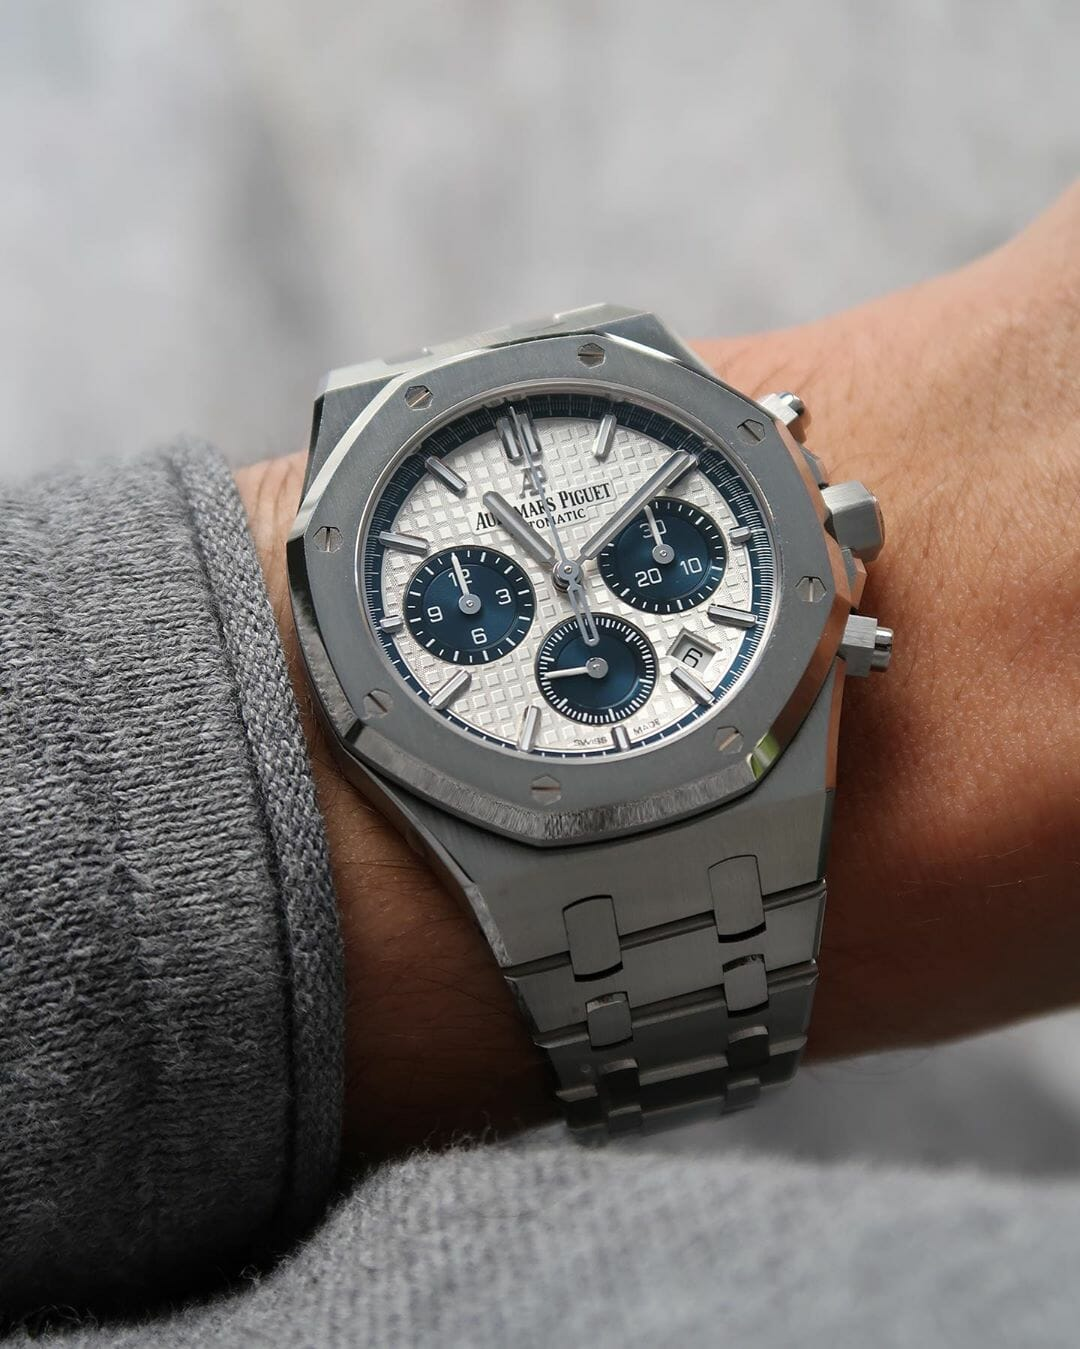 Audemars Piguet Royal Oak Chronograpgh Ref.26315ST by @watchrookiee